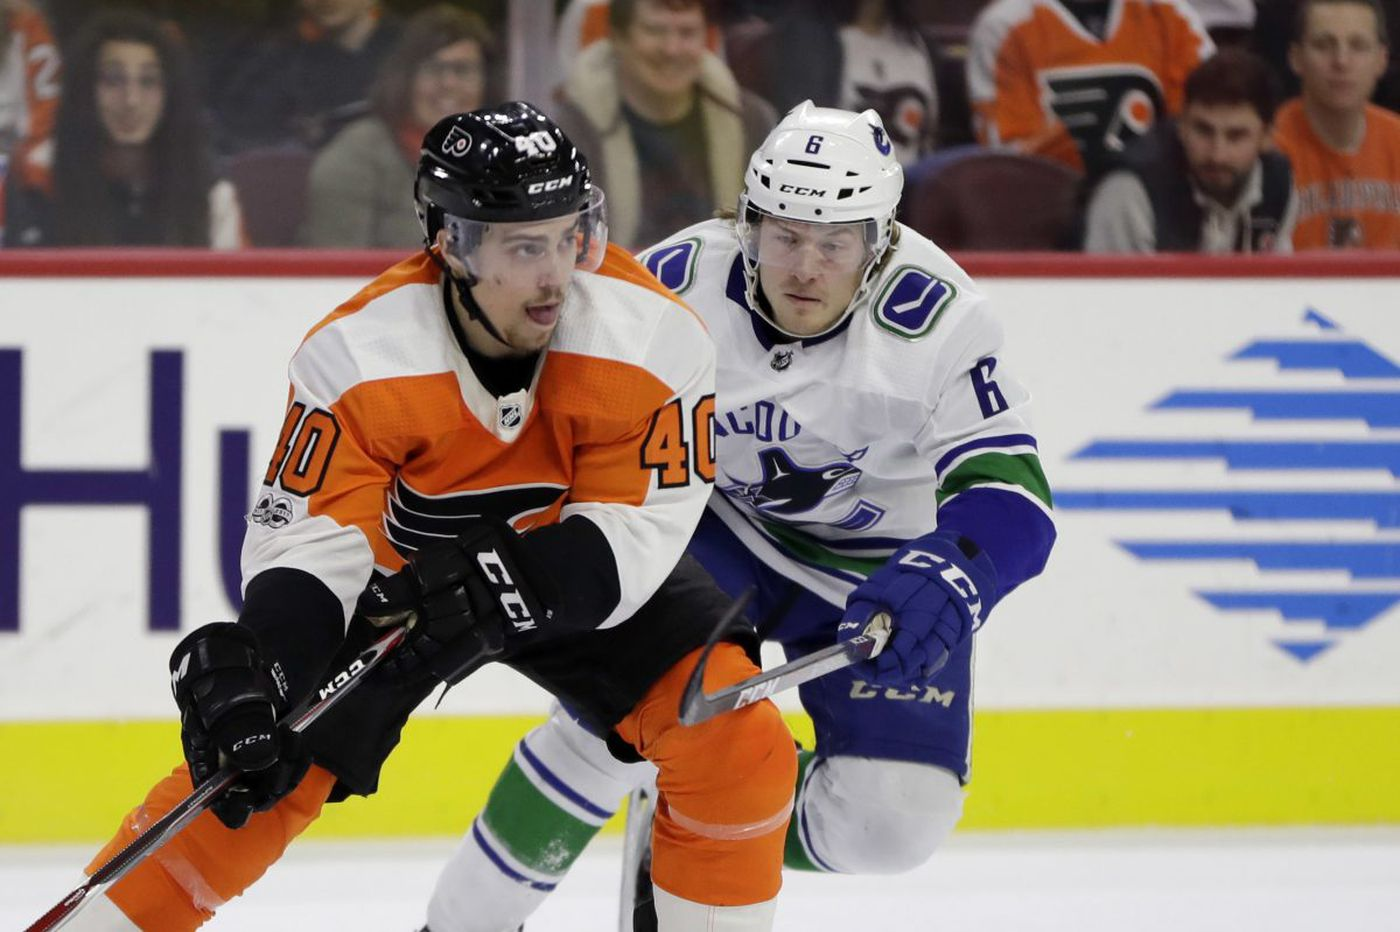 Jordan Weal, hitting 'restart button,' will replace Danick Martel in Flyers lineup